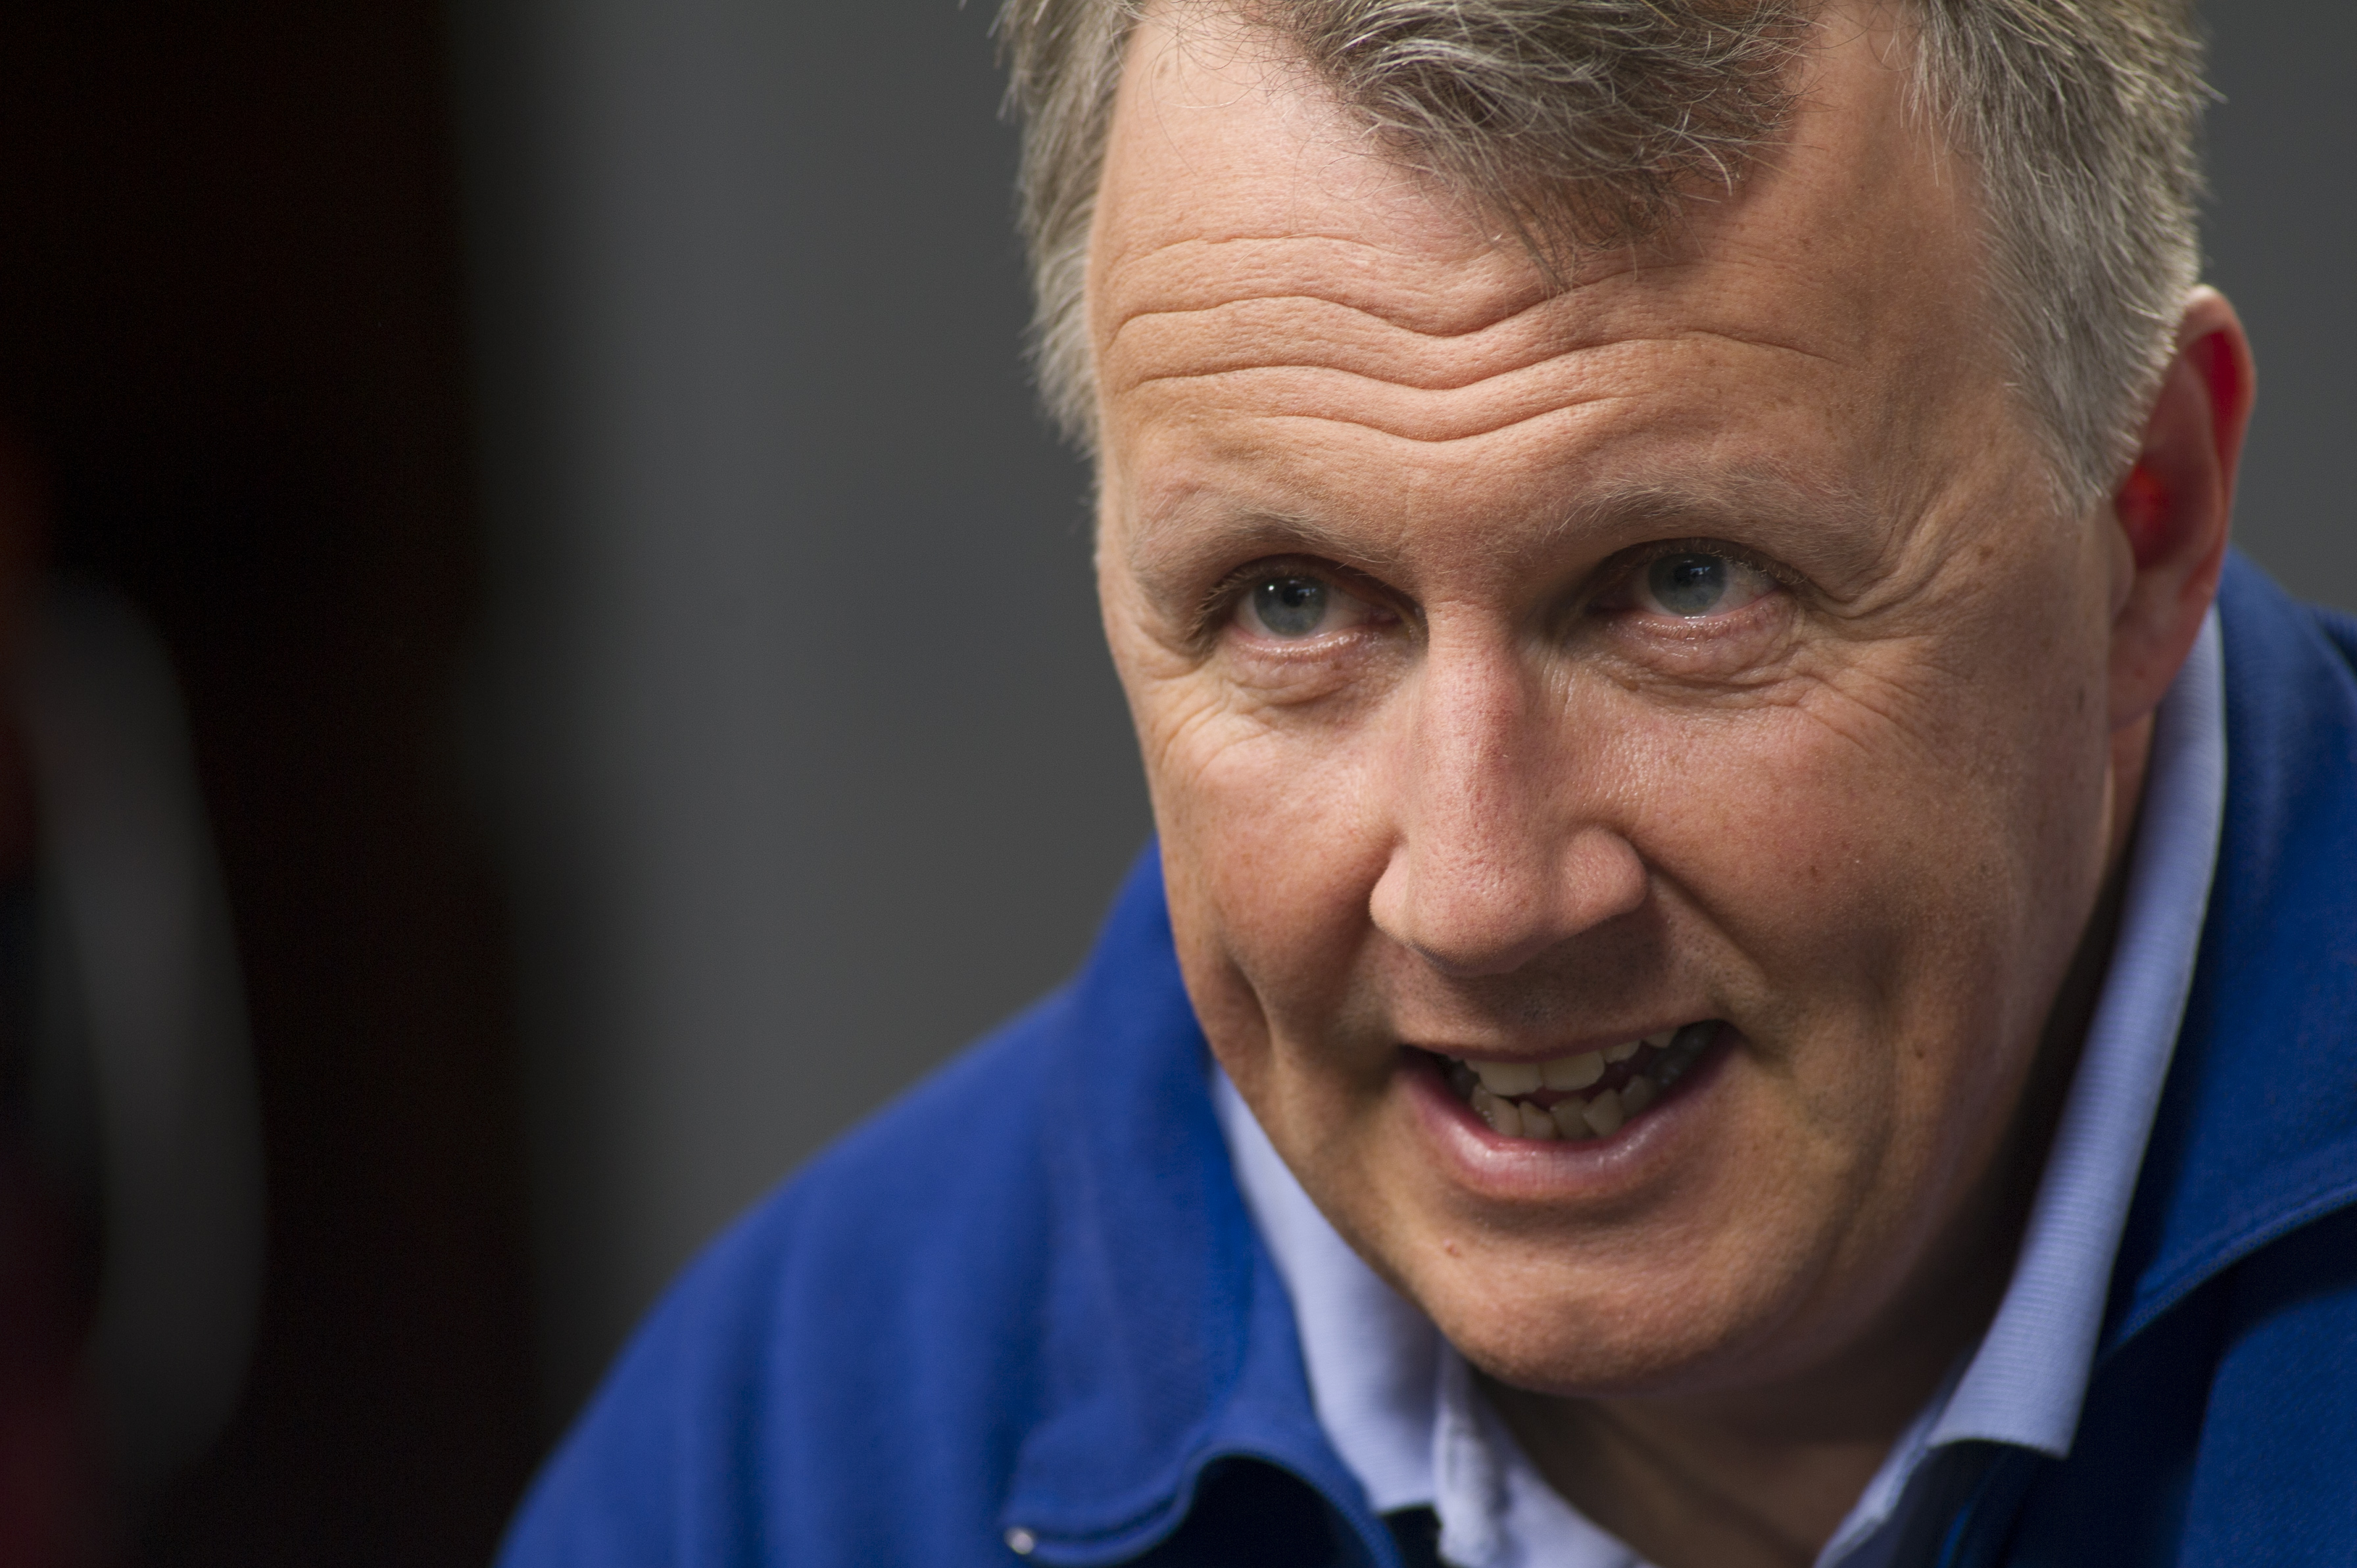 Y Combinator Co-Founders Paul Graham And Jessica Livingston Interview